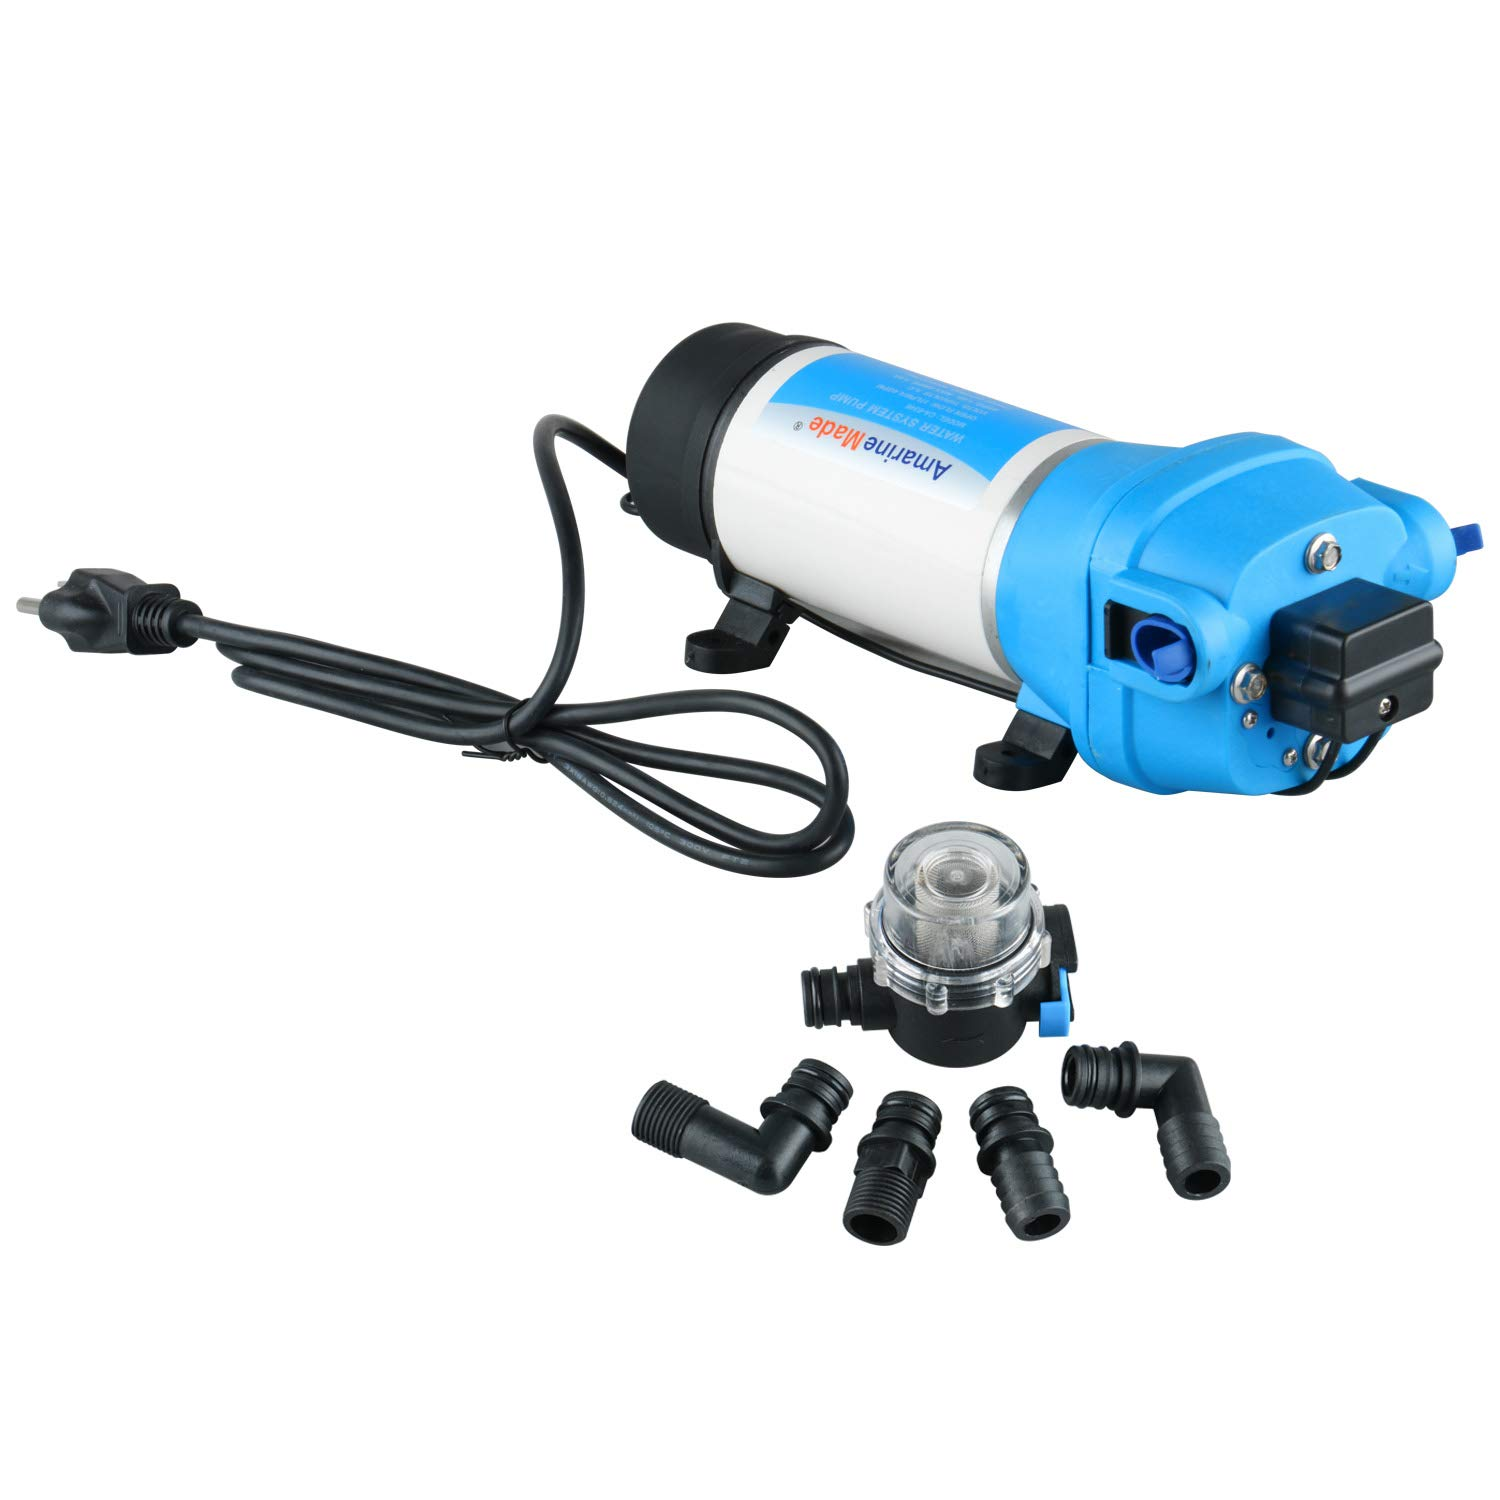 Amarine Made AC 110V Self Priming Water Pressure Diaphragm Pump 17LPM/4.5GPM AMPS:1.0A,MAX.AMPS:1.8A Press Setting:40PSI/2.8bar Caravan/RV/Boat/Marine by Amarine Made